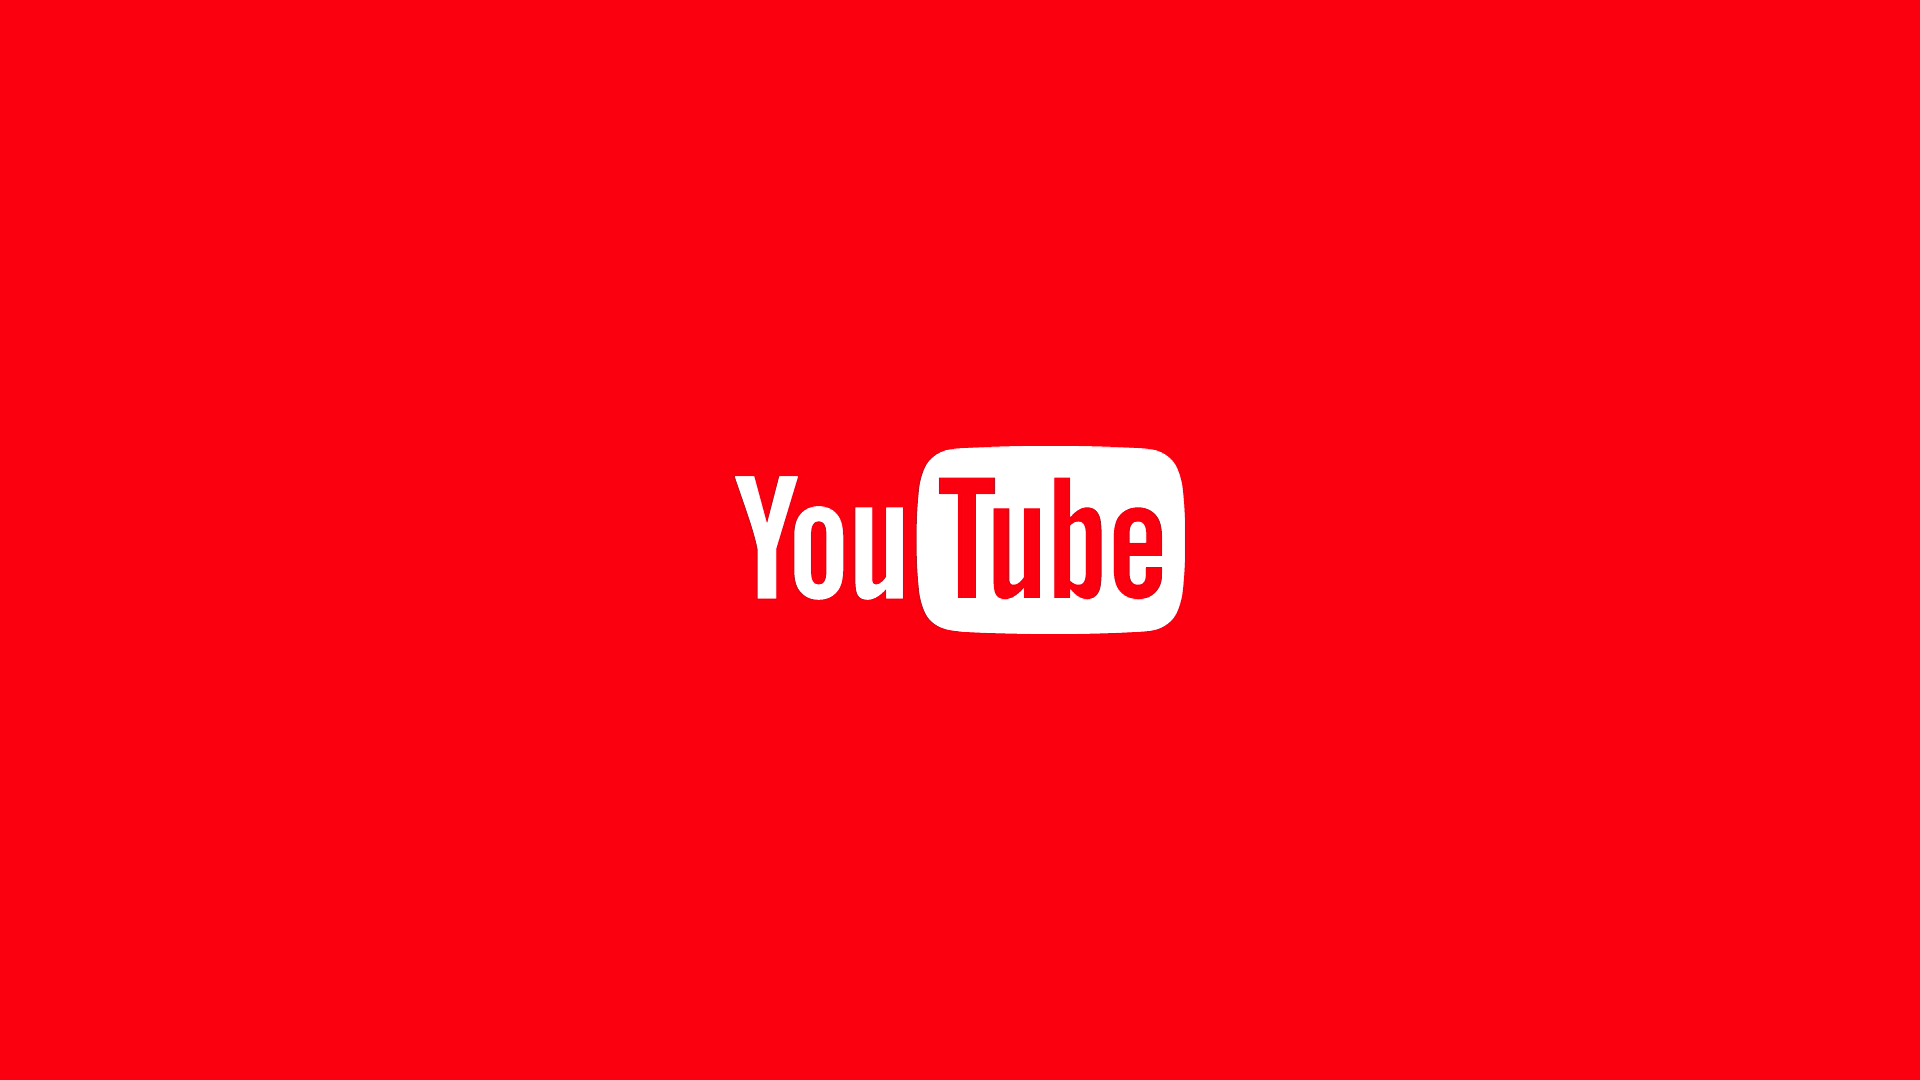 YouTube Wallpapers, Amazing YouTube Wallpapers Collection